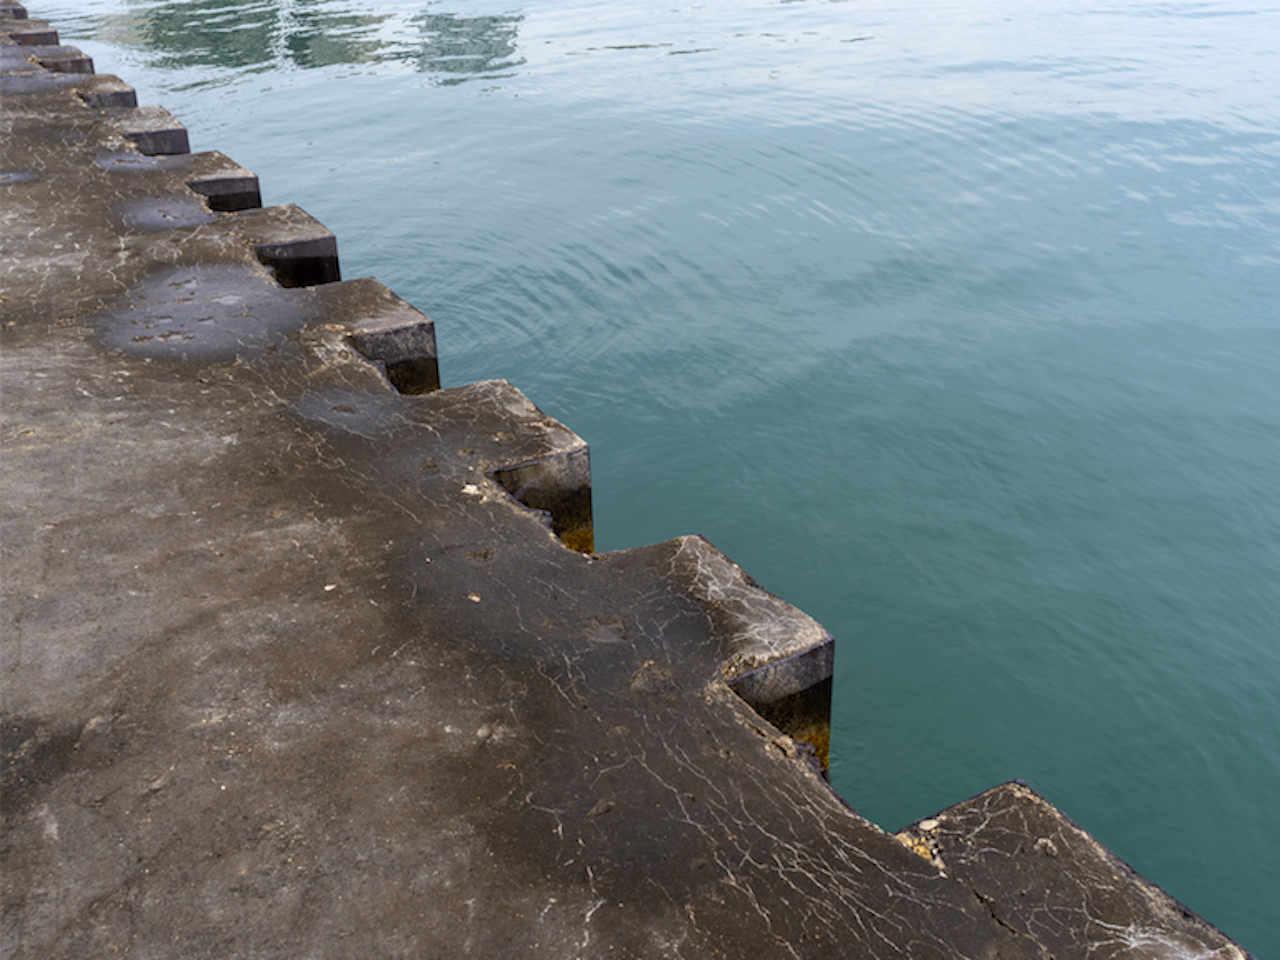 here in another photo from The Shore, a concrete wall, with serrated steel edge, cuts across the photo from lower right to upper left corner, the right half is filled with green blue lake waters